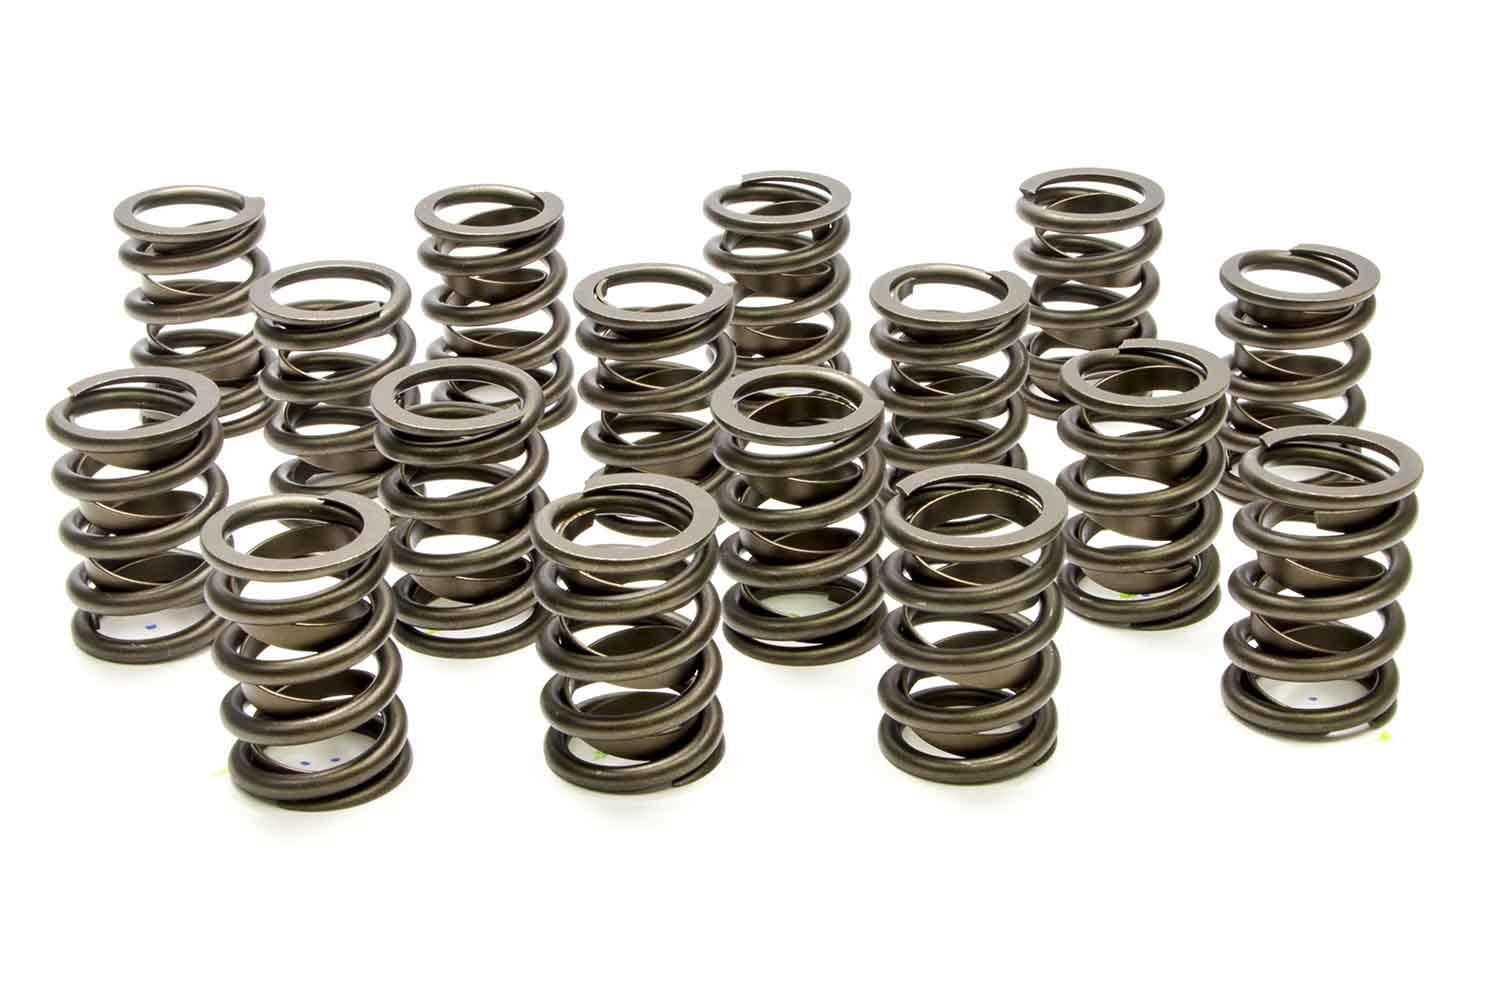 PAC Racing Springs PAC-1911 Valve Spring, Hot Rod Series, Single Spring / Damper, 526 lb/in Spring Rate, 1.150 in Coil Bind, 1.265 in OD, Small Block Chevy / LT-Series, Set of 16